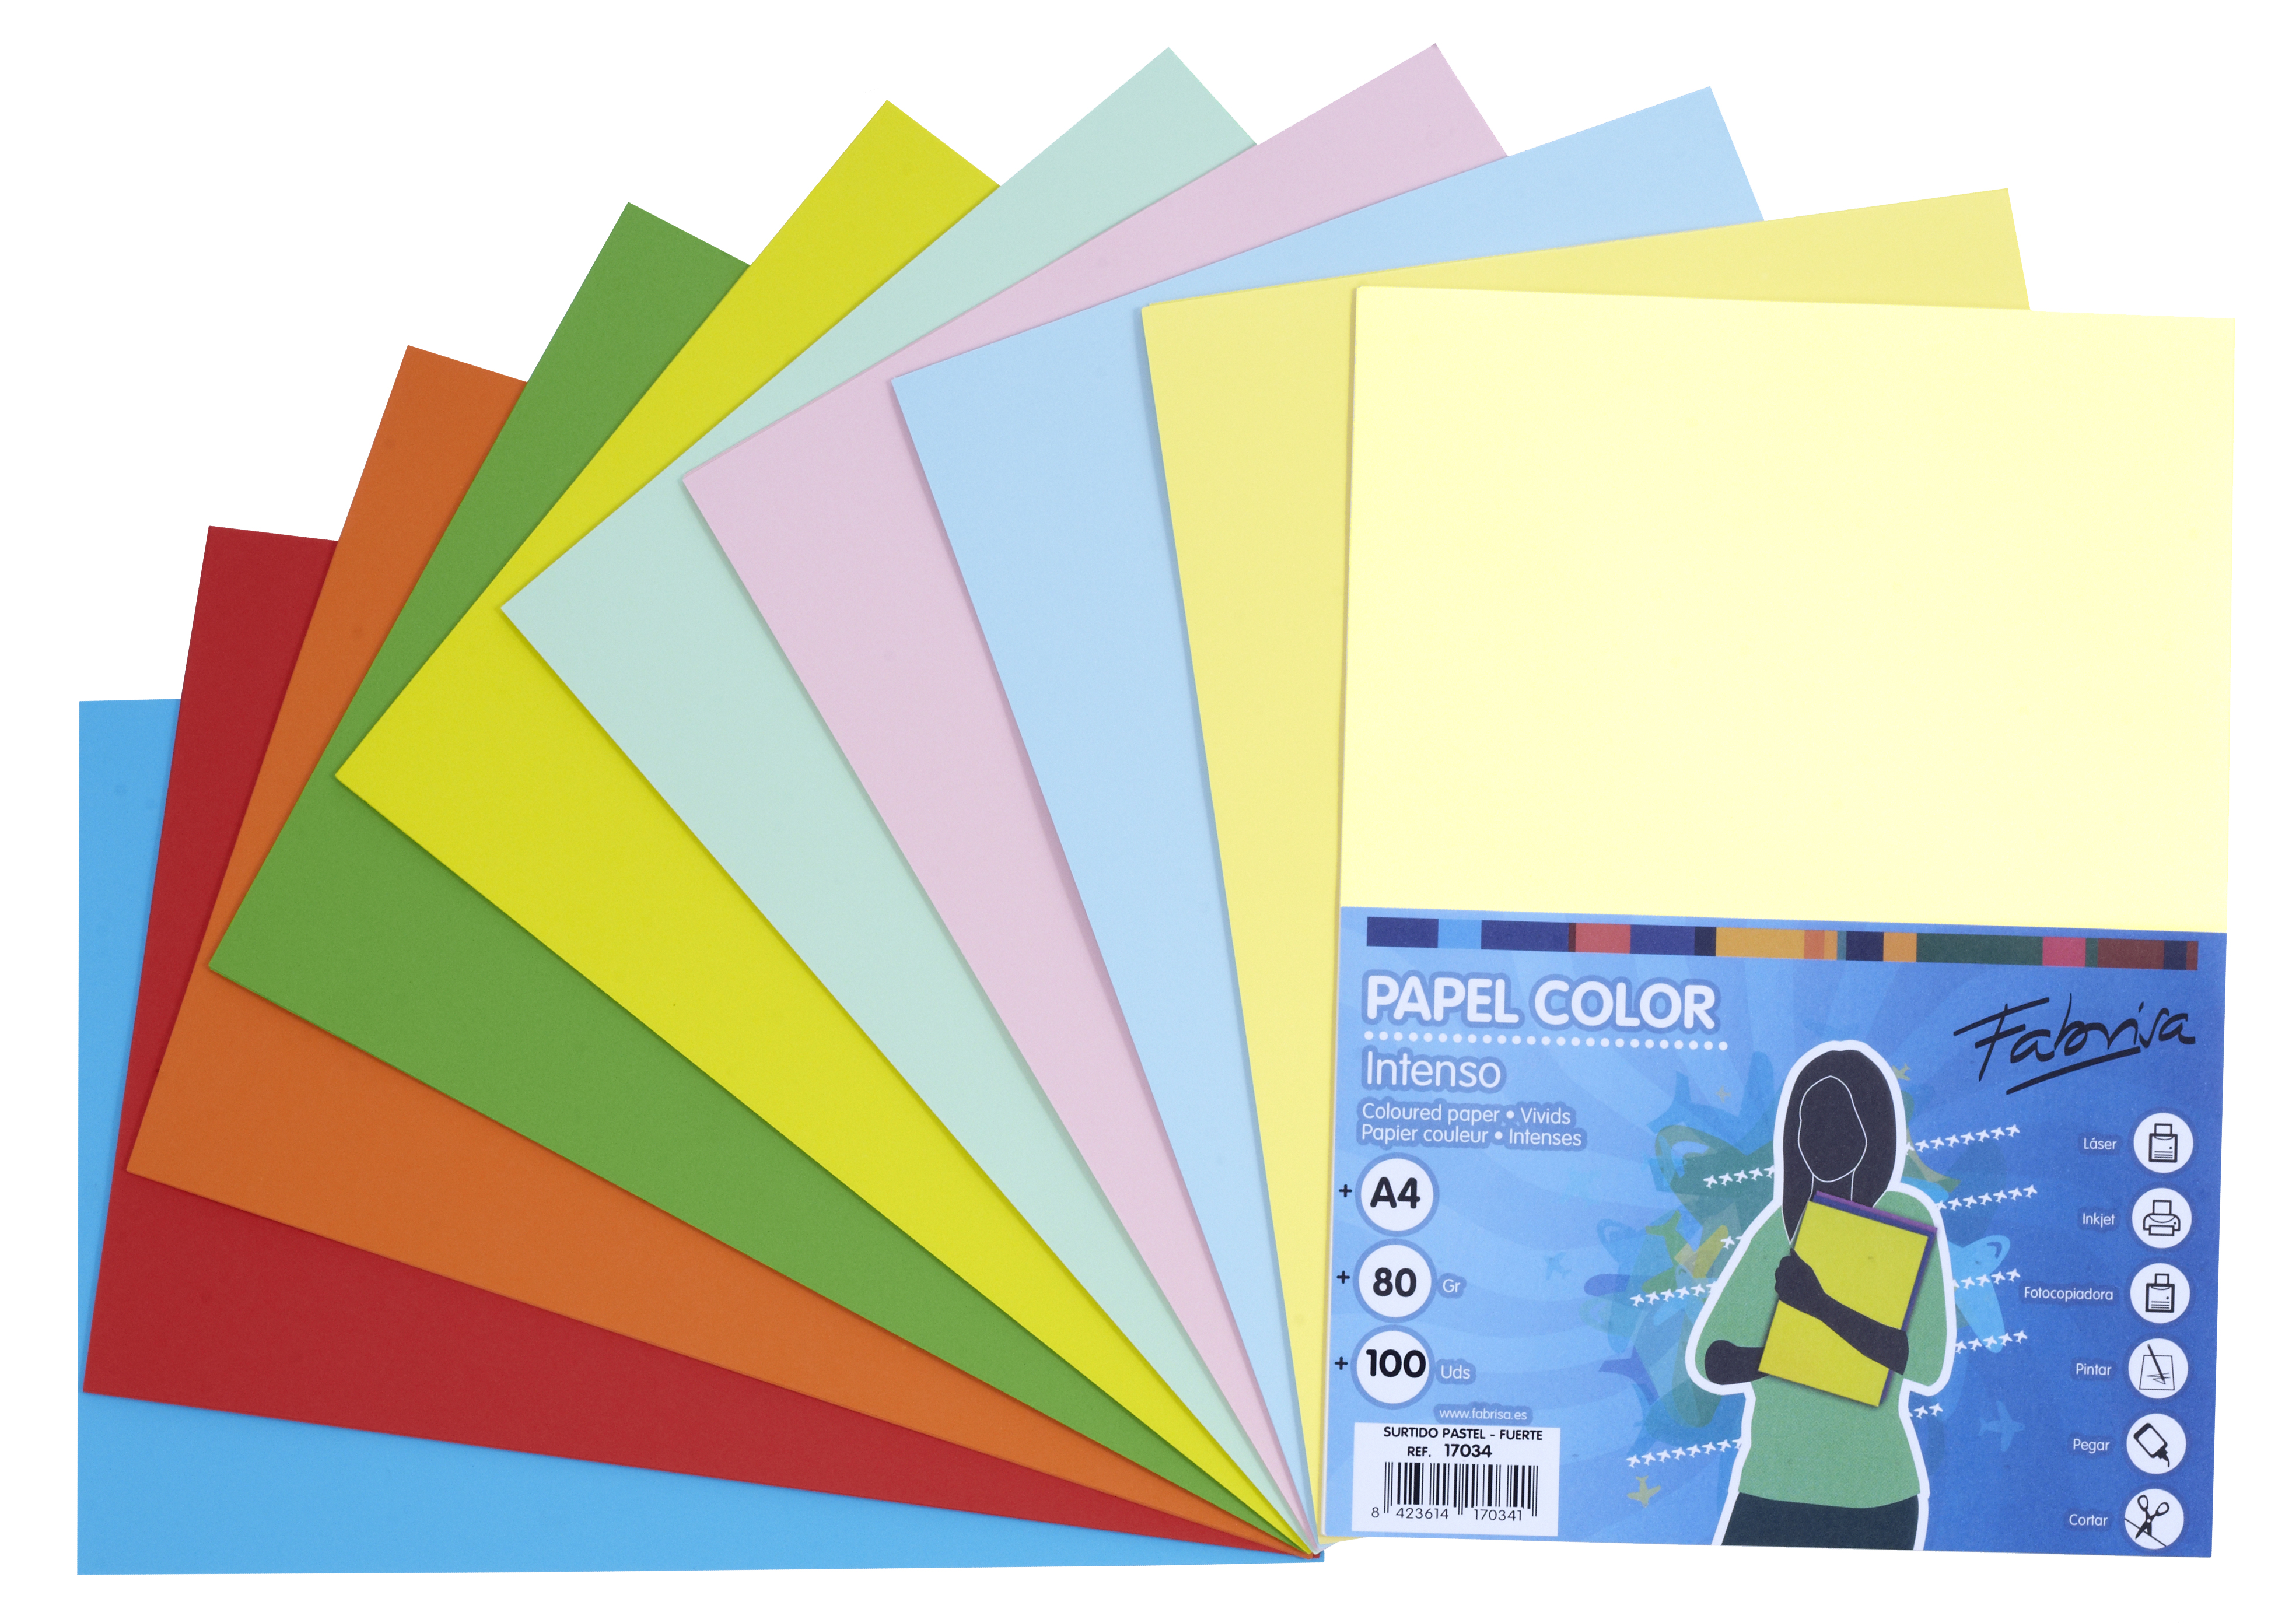 Papel color FABRISA  A4 80g Pastel/Intensos Pack 100h